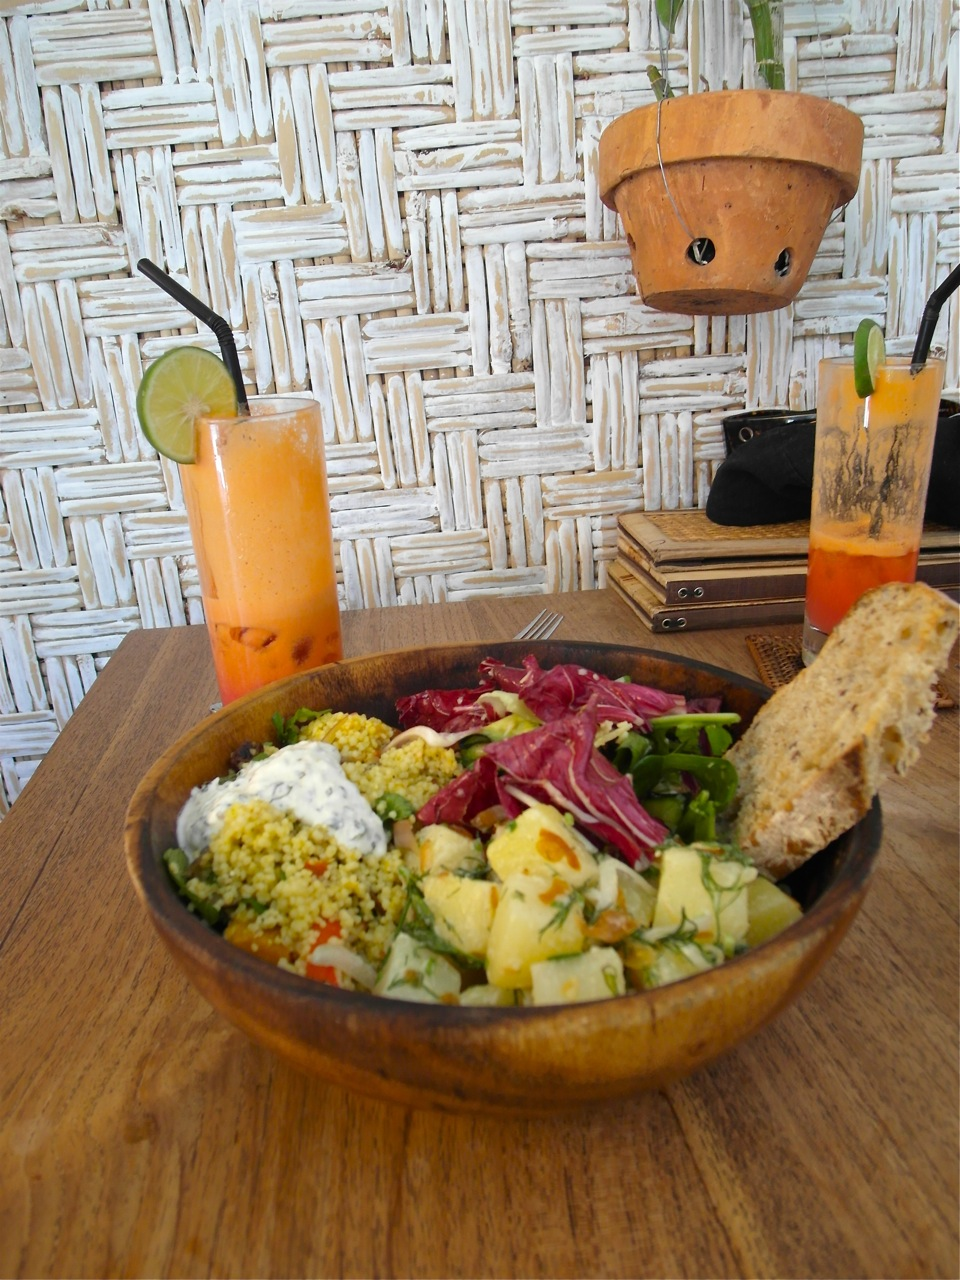 A selection of salads at Cafe Zucchini